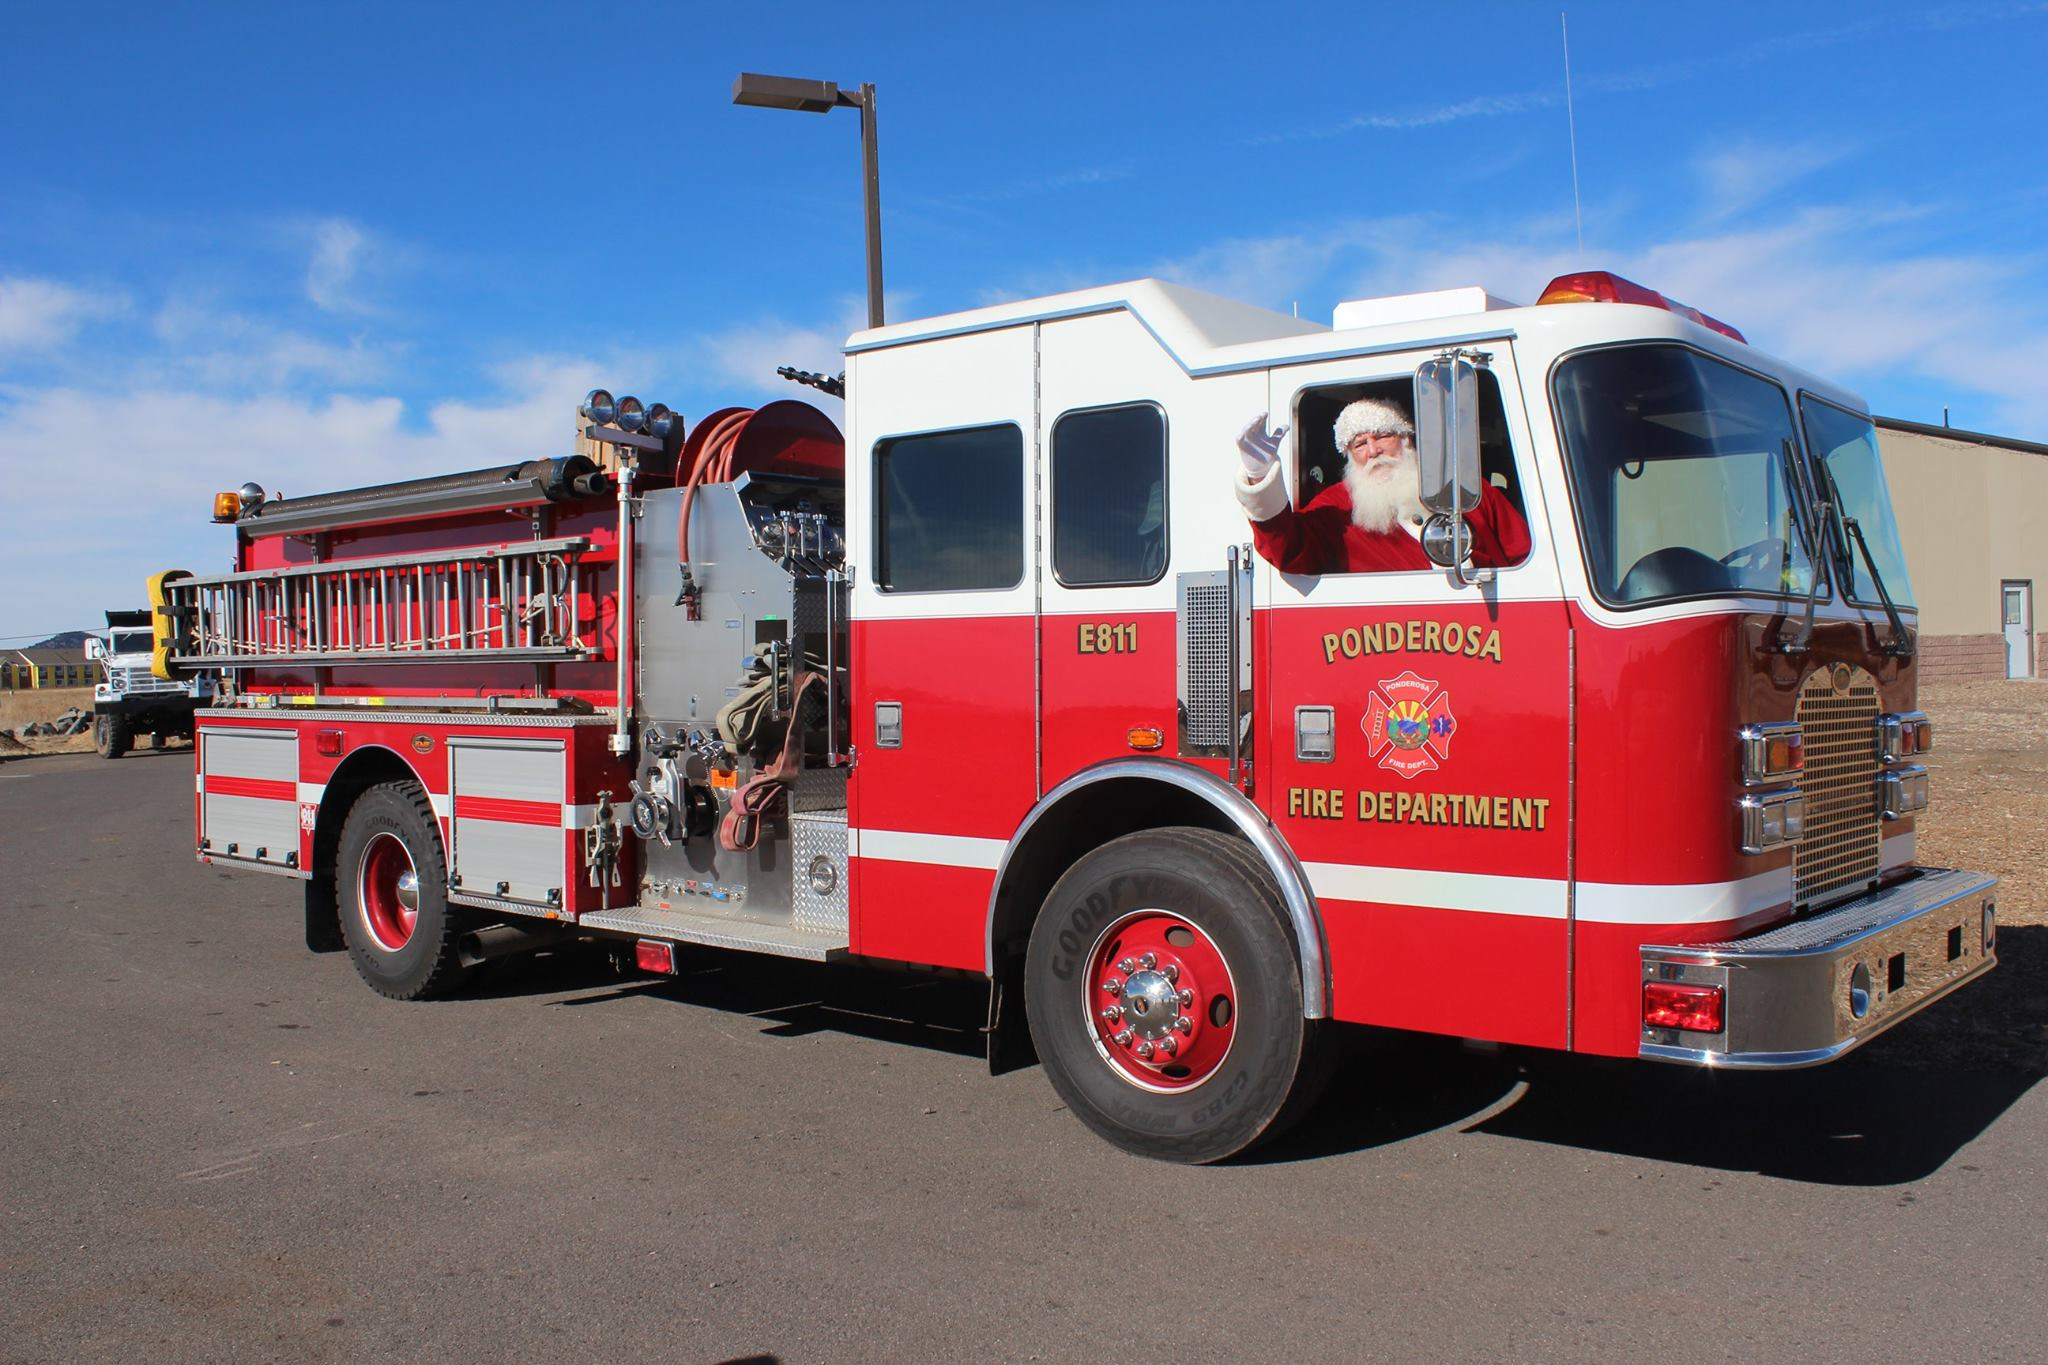 Santa taking a picture in the fire truck